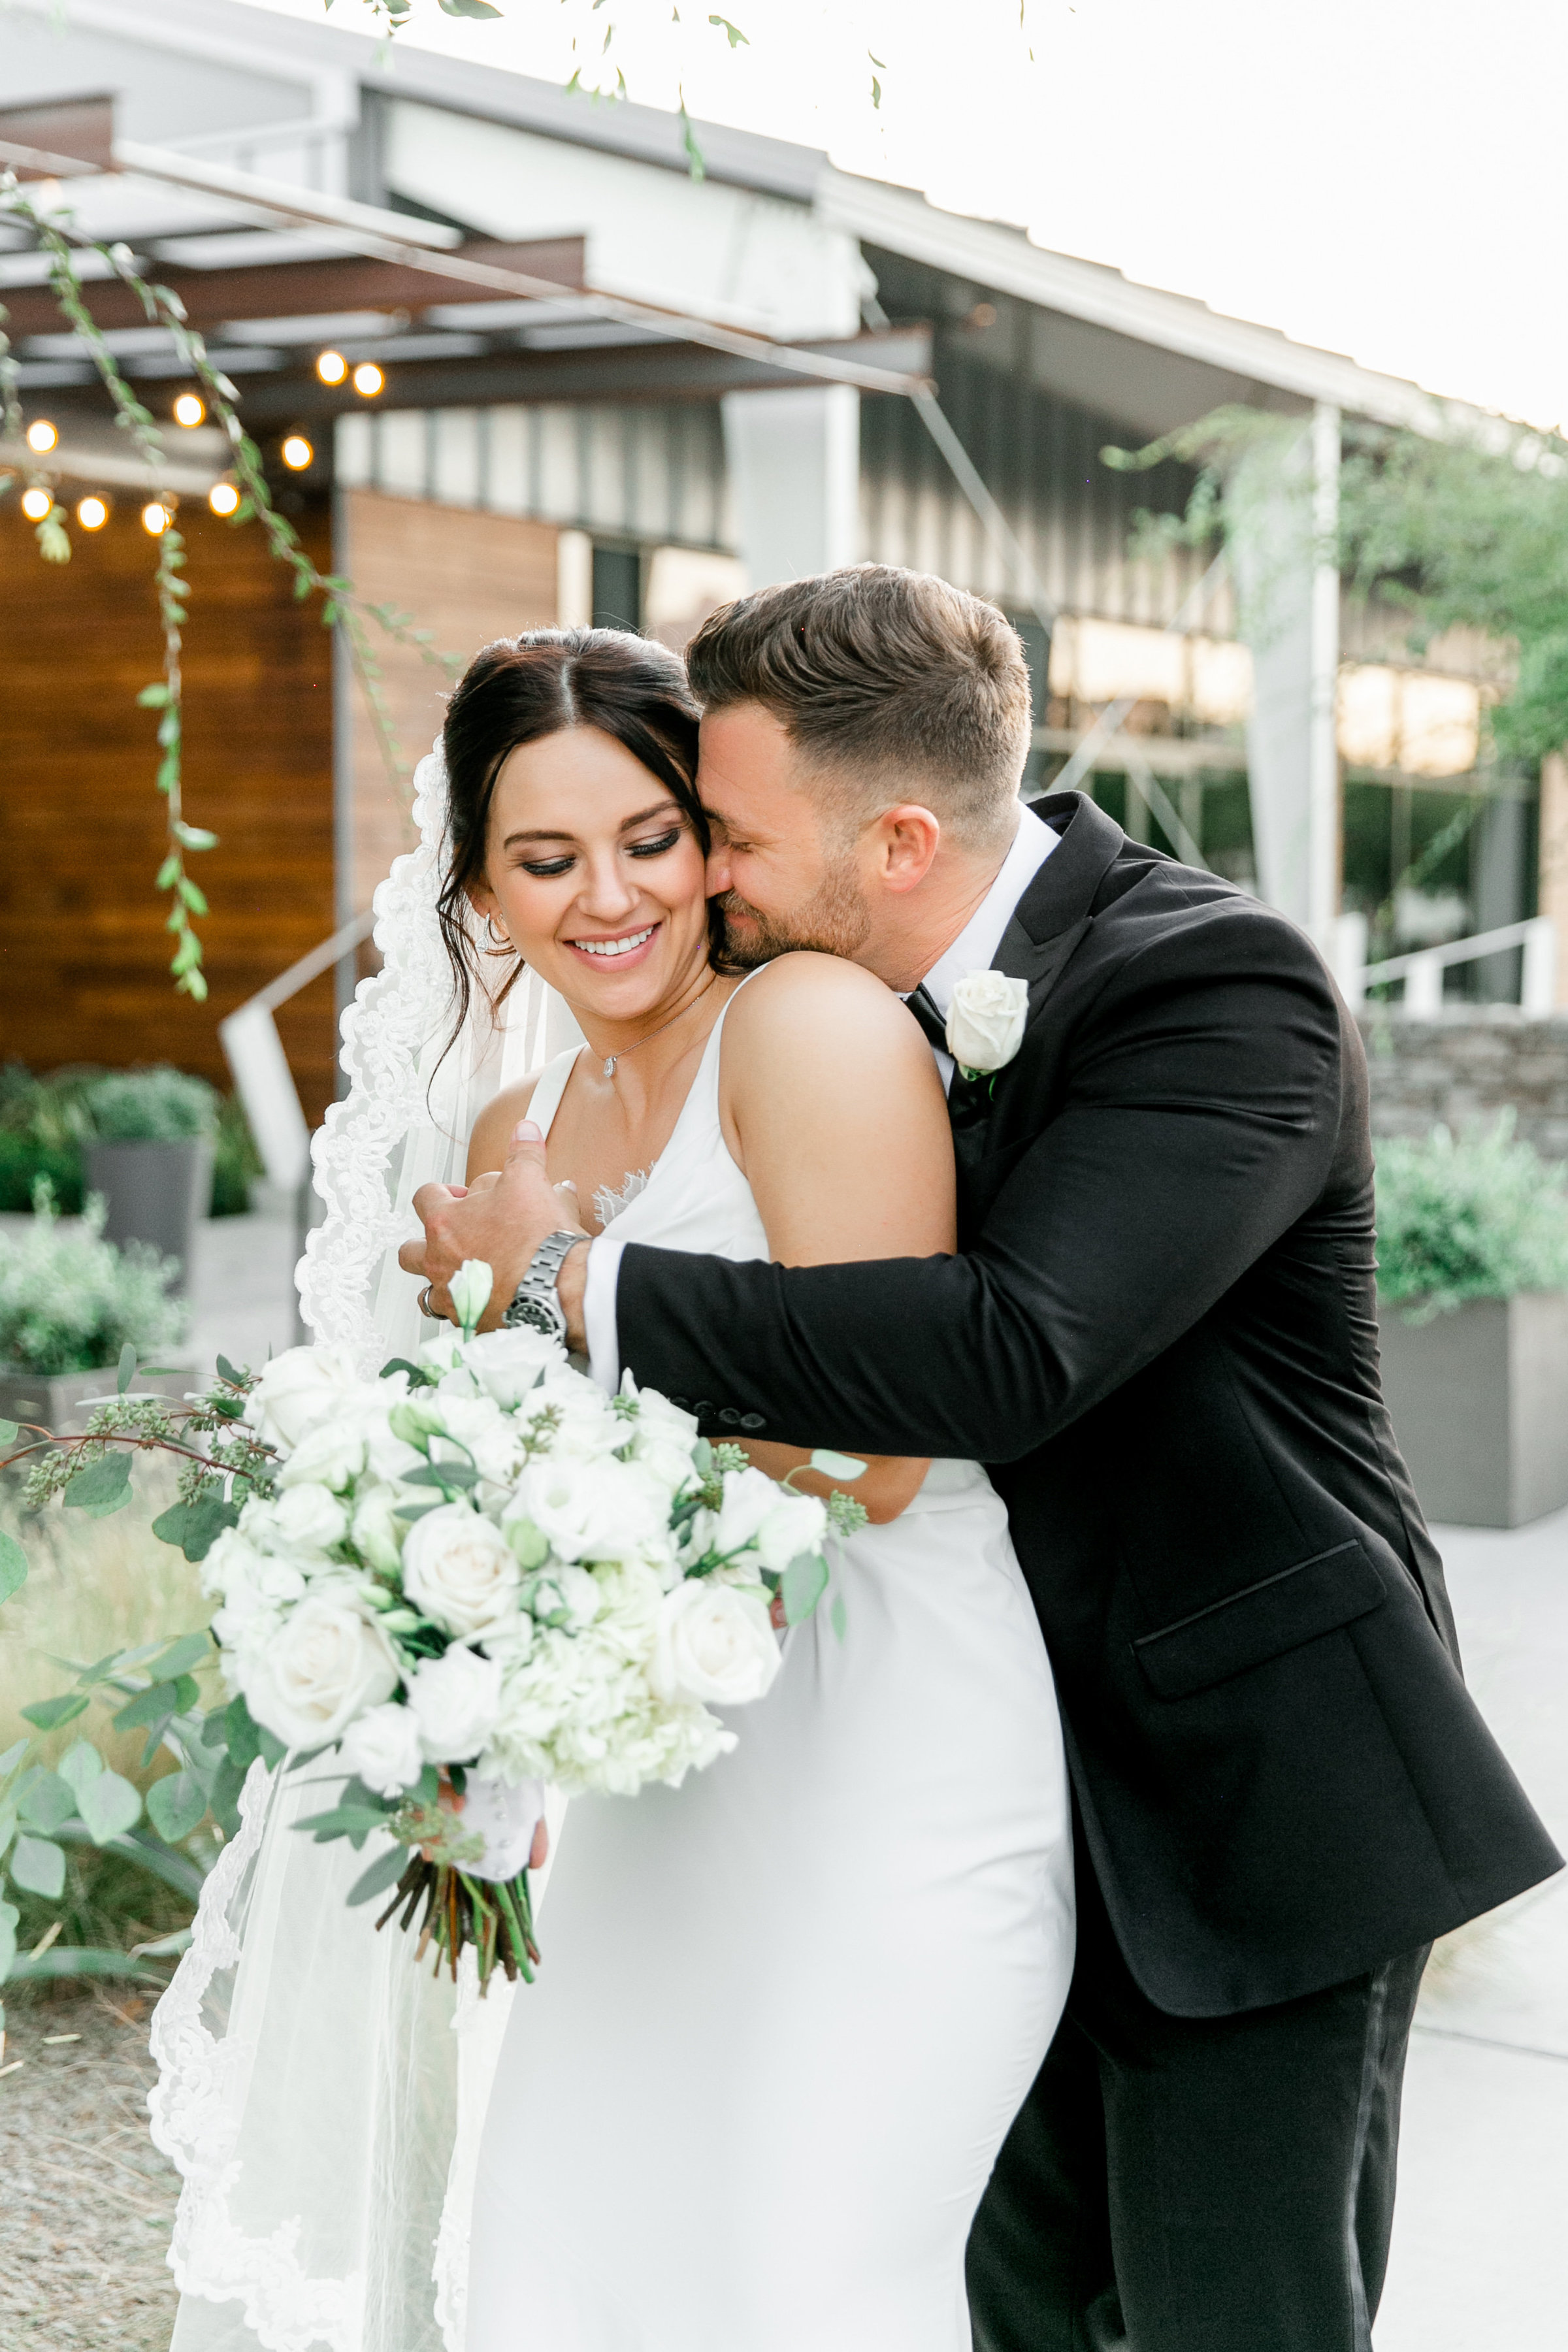 Karlie Colleen Photography - Arizona Wedding Photographer - The Clayton House - Jori & Matt-40